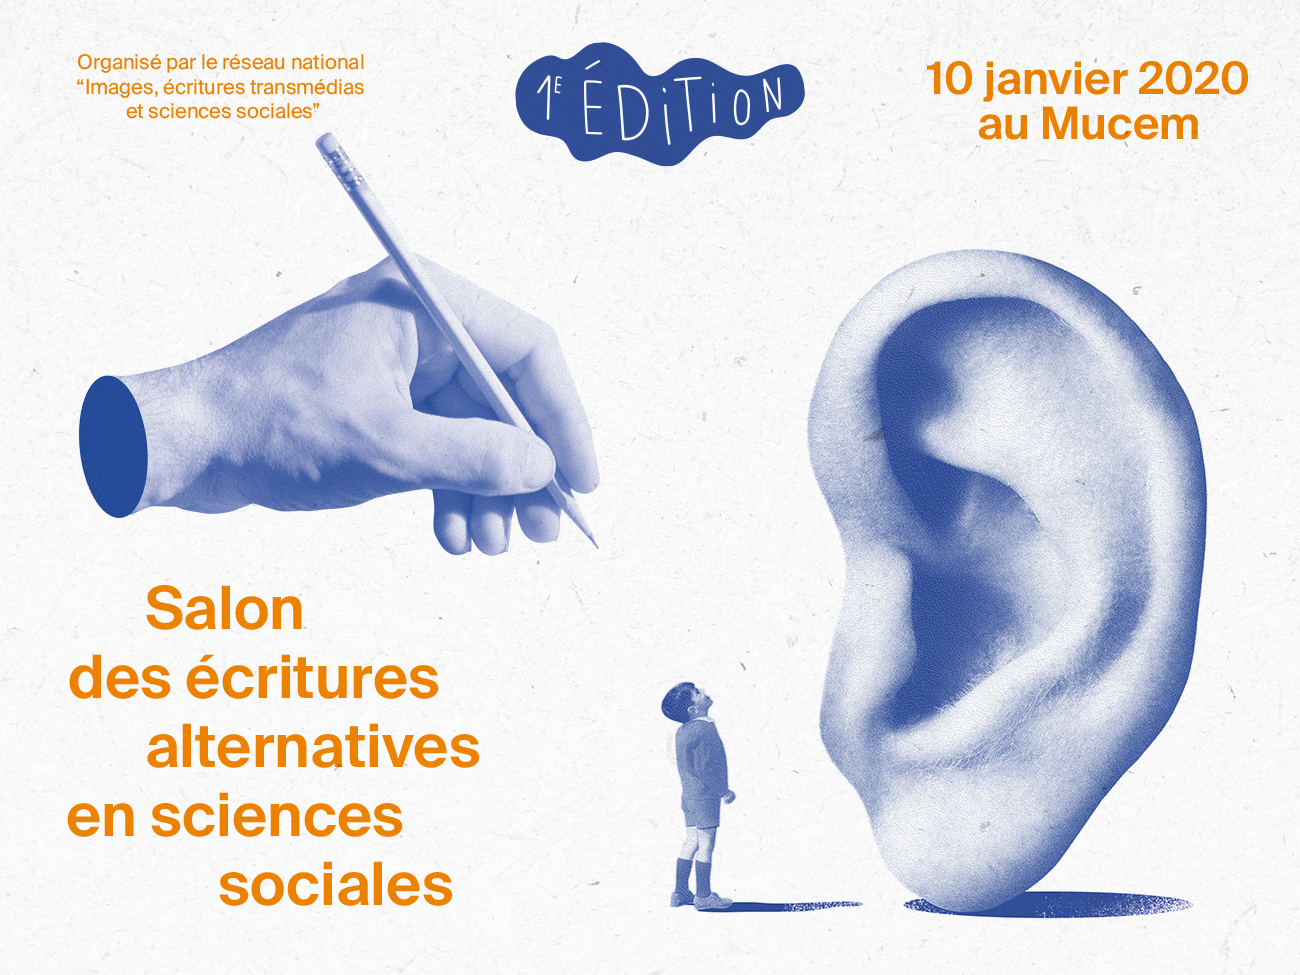 Salon des écritures alternatives en sciences sociales,© Jean Paul D'Alife - UUS-STUDIO, 2019